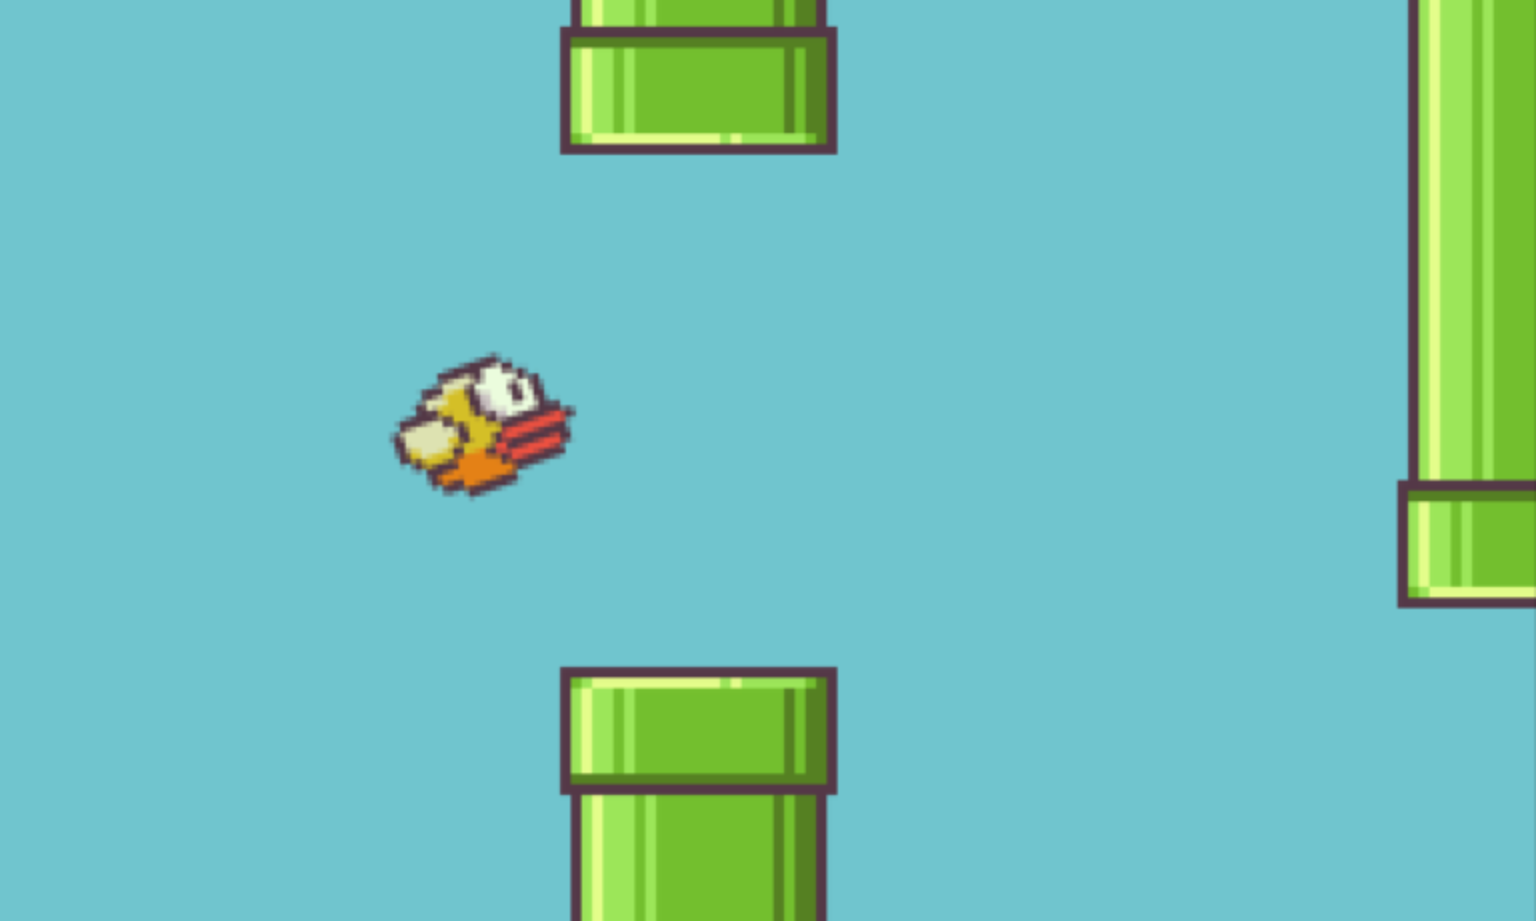 Flappy Bird winging its way back to App Store